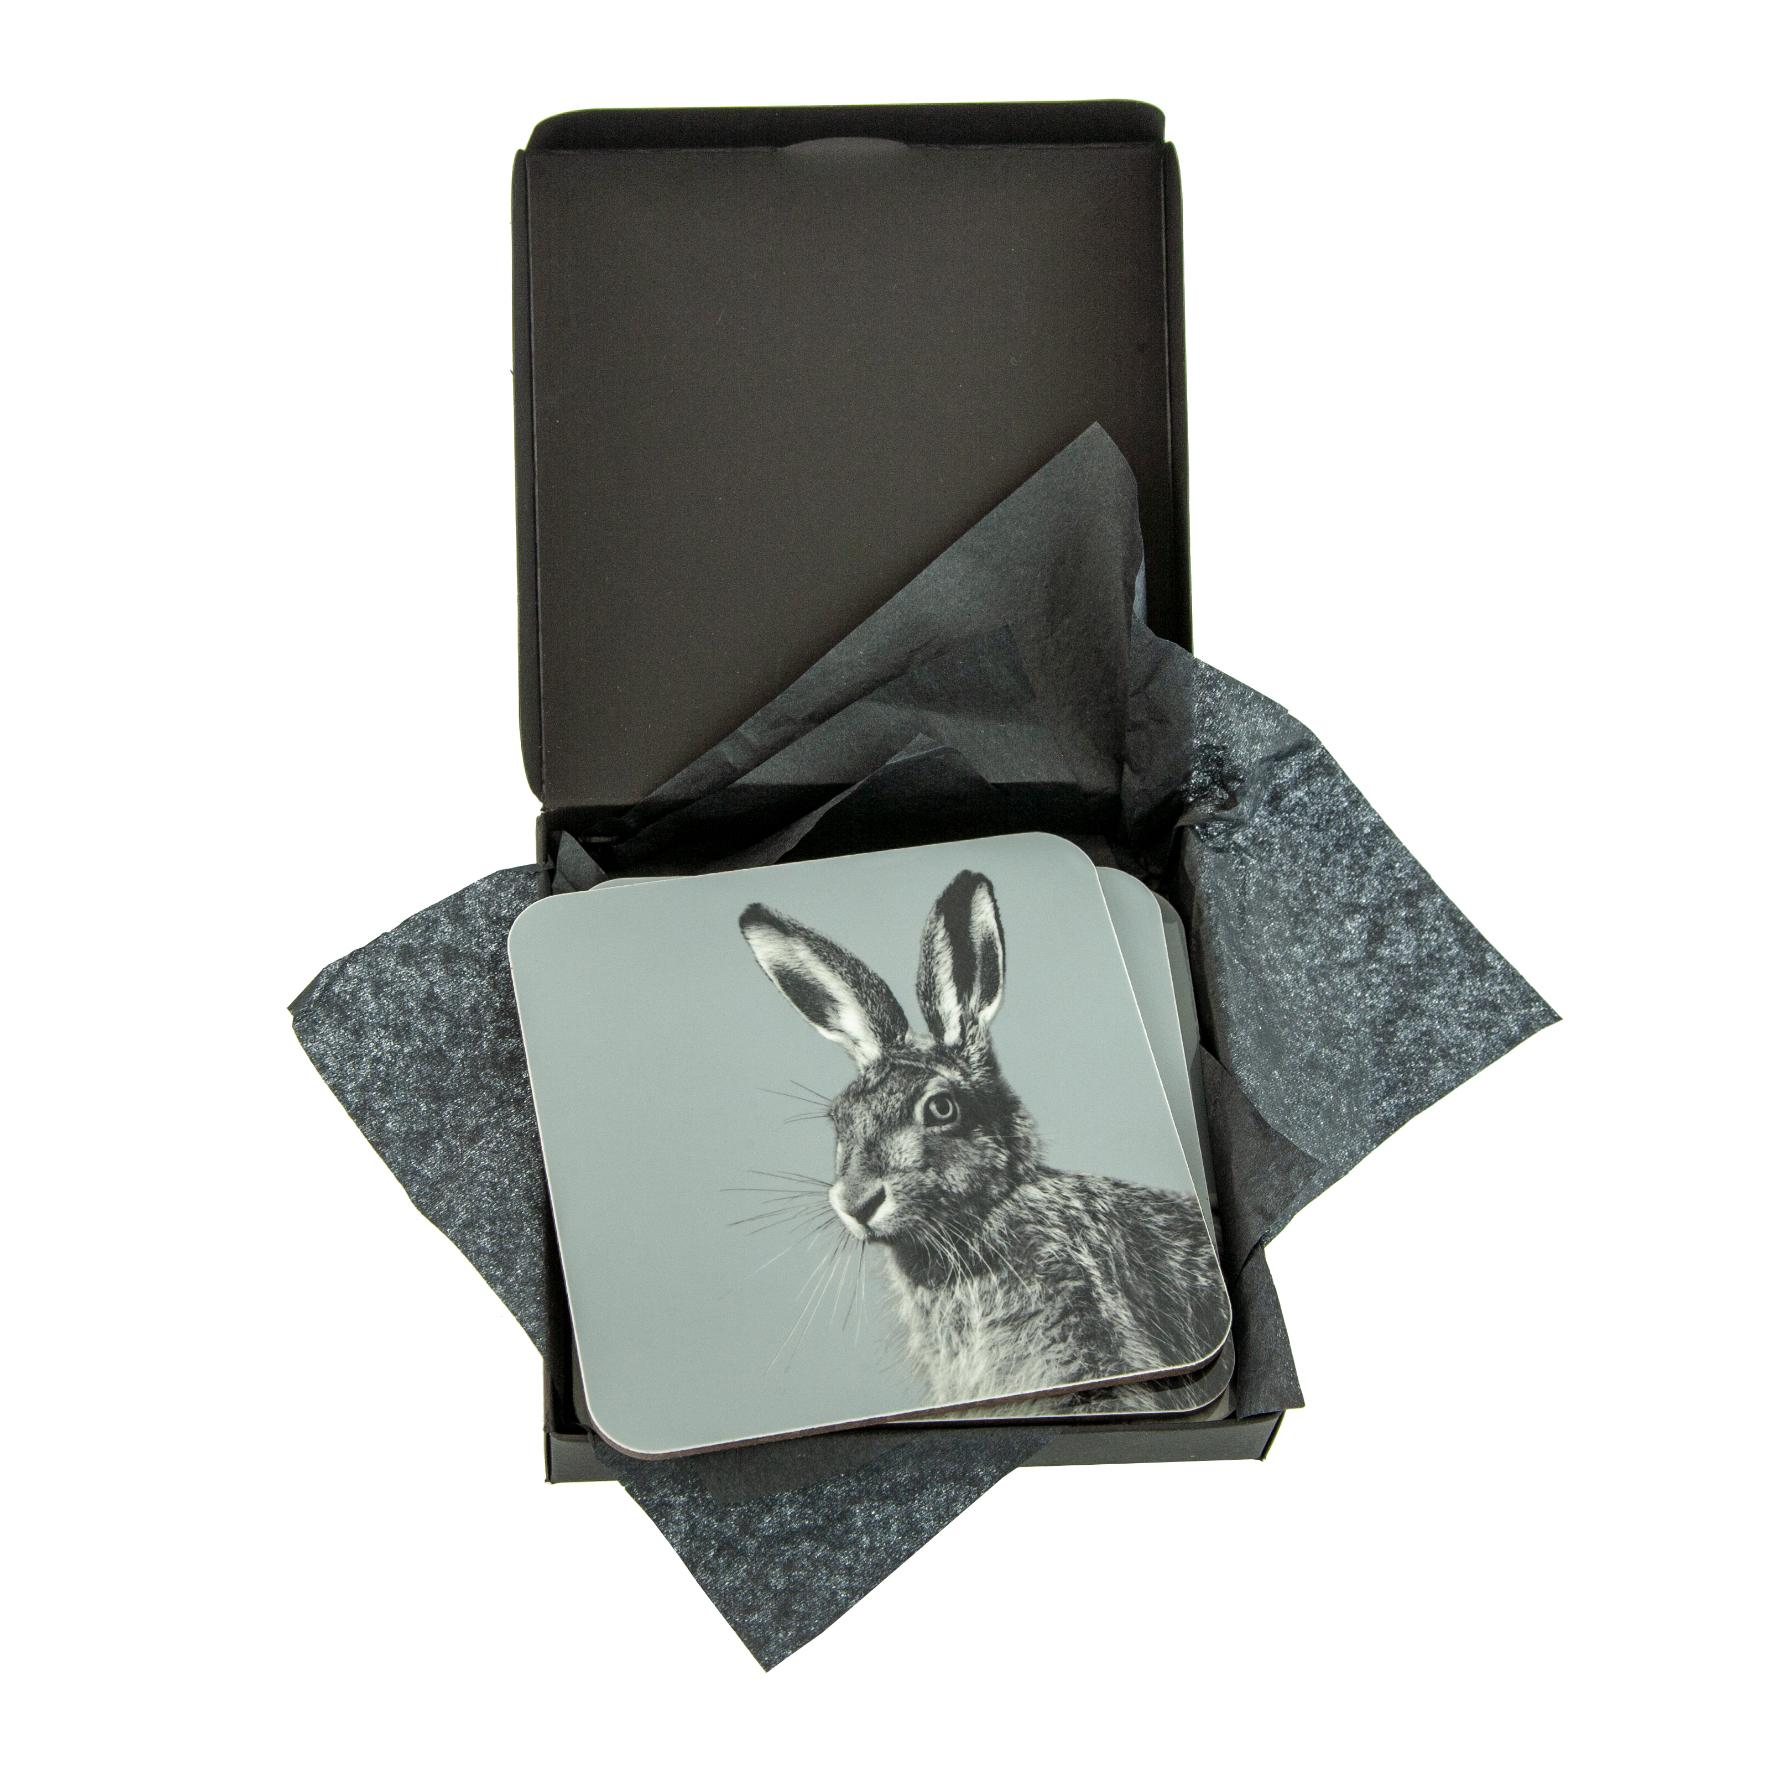 Hare Coaster on Pale Blue